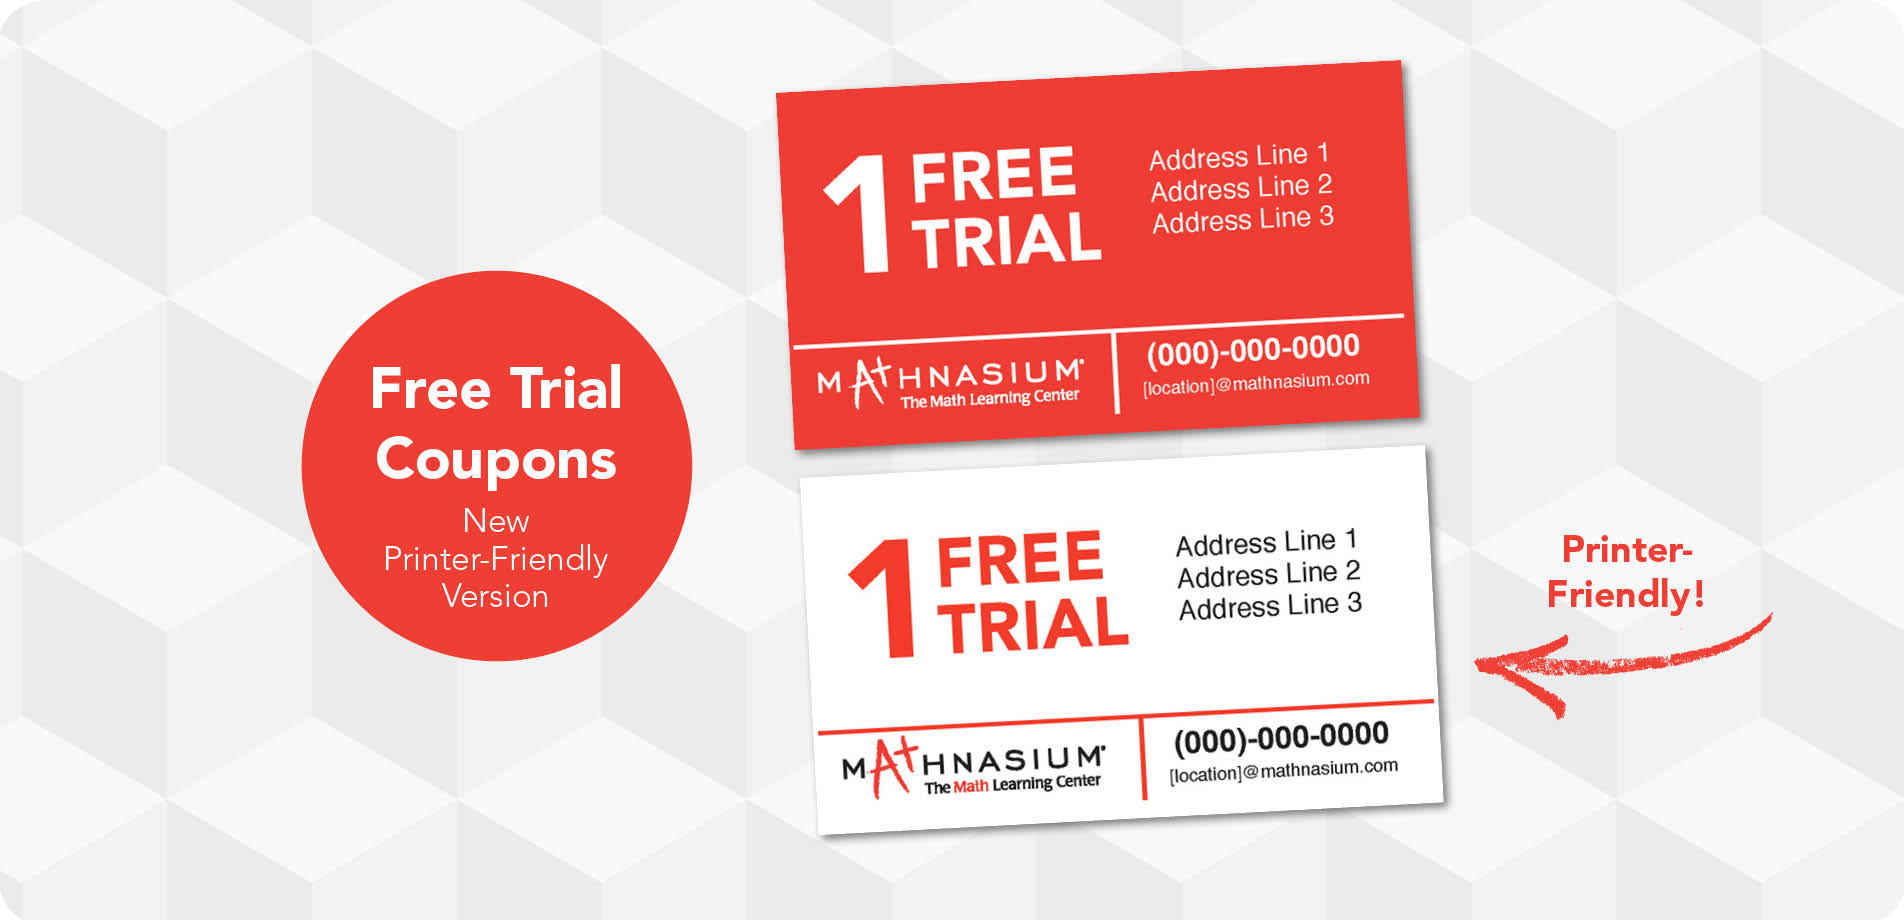 Sample-Email-Free-Trial-Coupons-2016